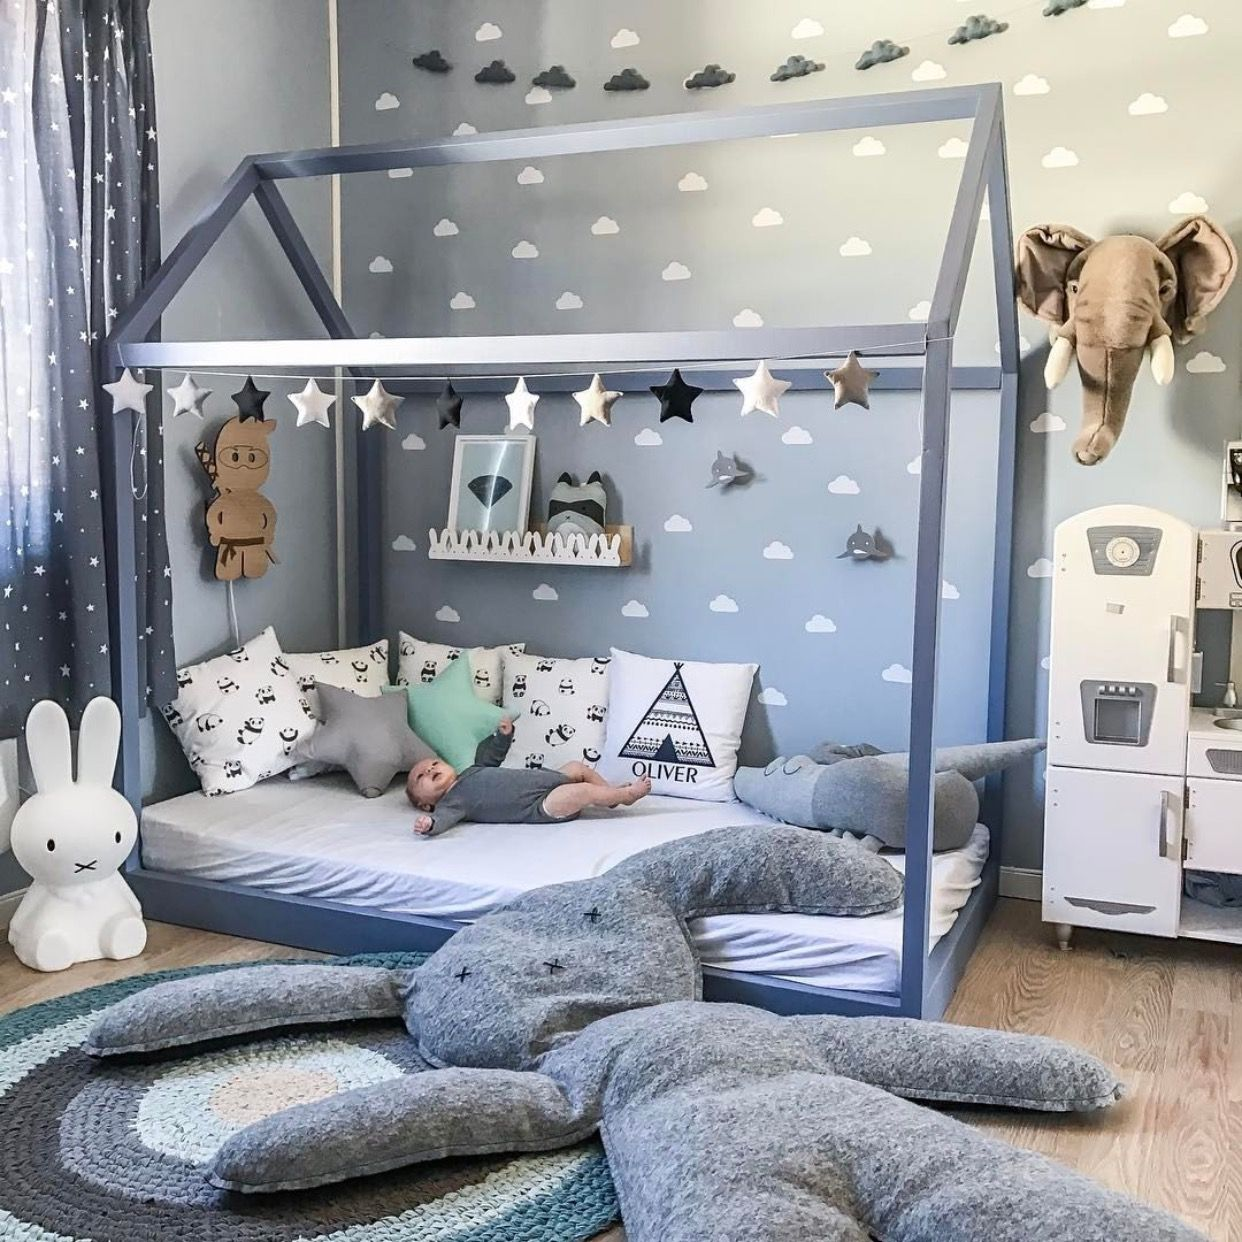 cuarto montessori montessori in 2018 pinterest kinderzimmer kinderzimmer ideen und. Black Bedroom Furniture Sets. Home Design Ideas